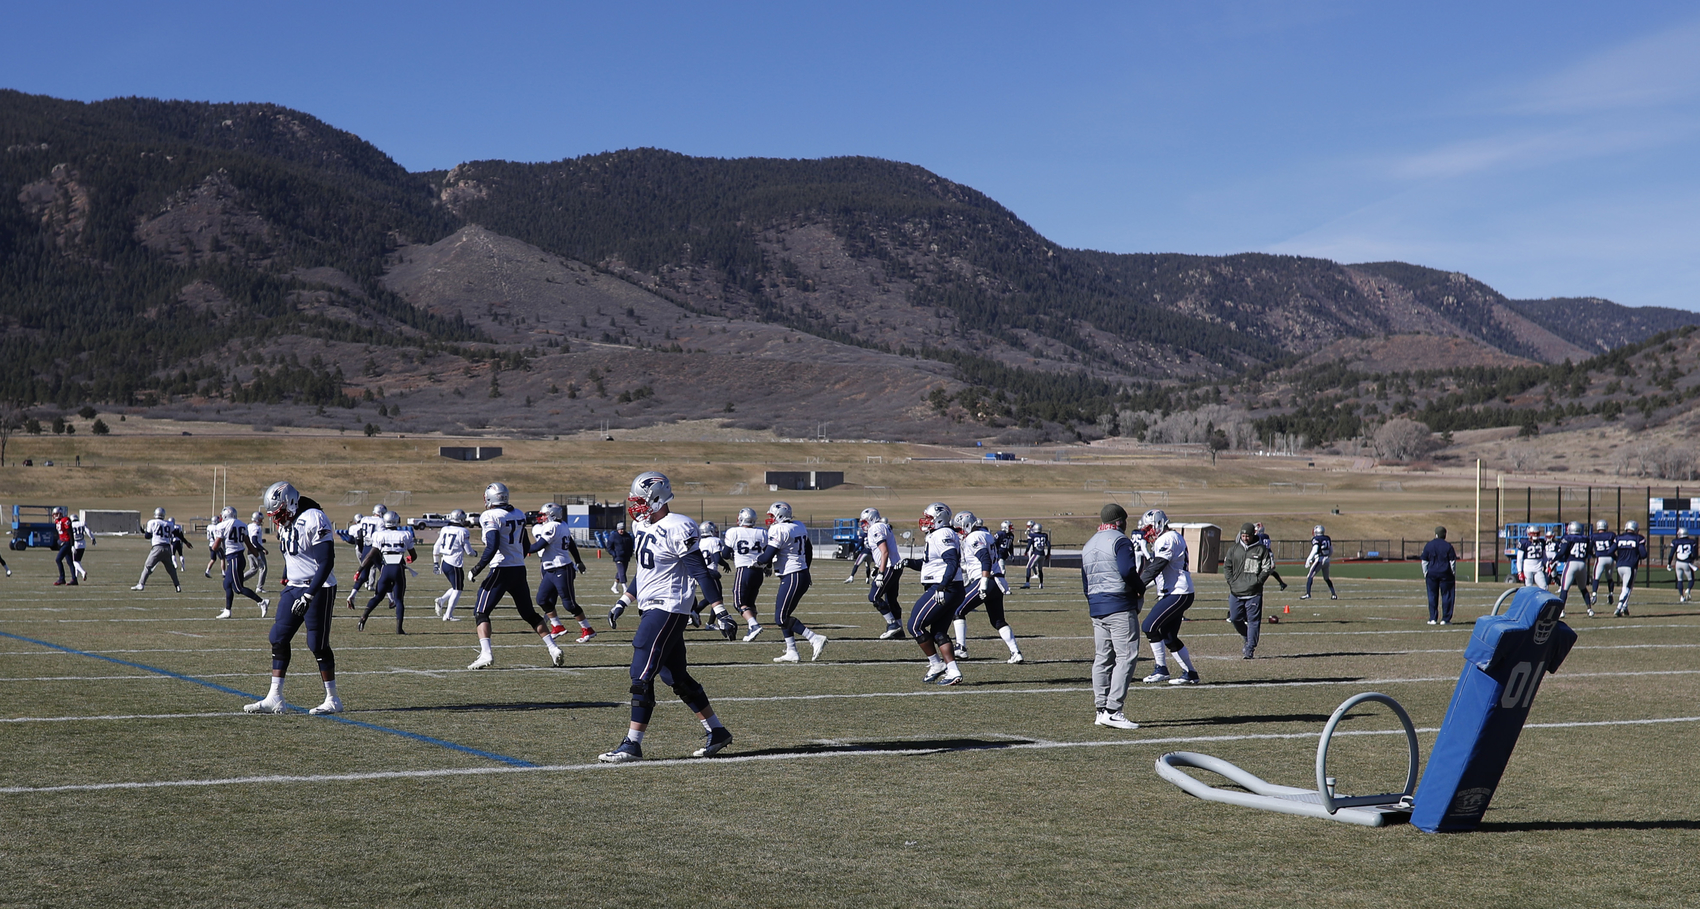 With the surrounding mountains in the background, the New England Patriots take part in drills at NFL football practice, Wednesday, Nov. 15, 2017, on the campus of the Air Force Academy in Air Force Academy, Colo. The Patriots are practicing at Air Force, which is located at an elevation of 7,200 feet, to prepare to face the Oakland Raiders during an NFL football game Sunday in Mexico City, which sits at an elevation of almost 7,400 feet above sea level. (AP Photo/David Zalubowski)